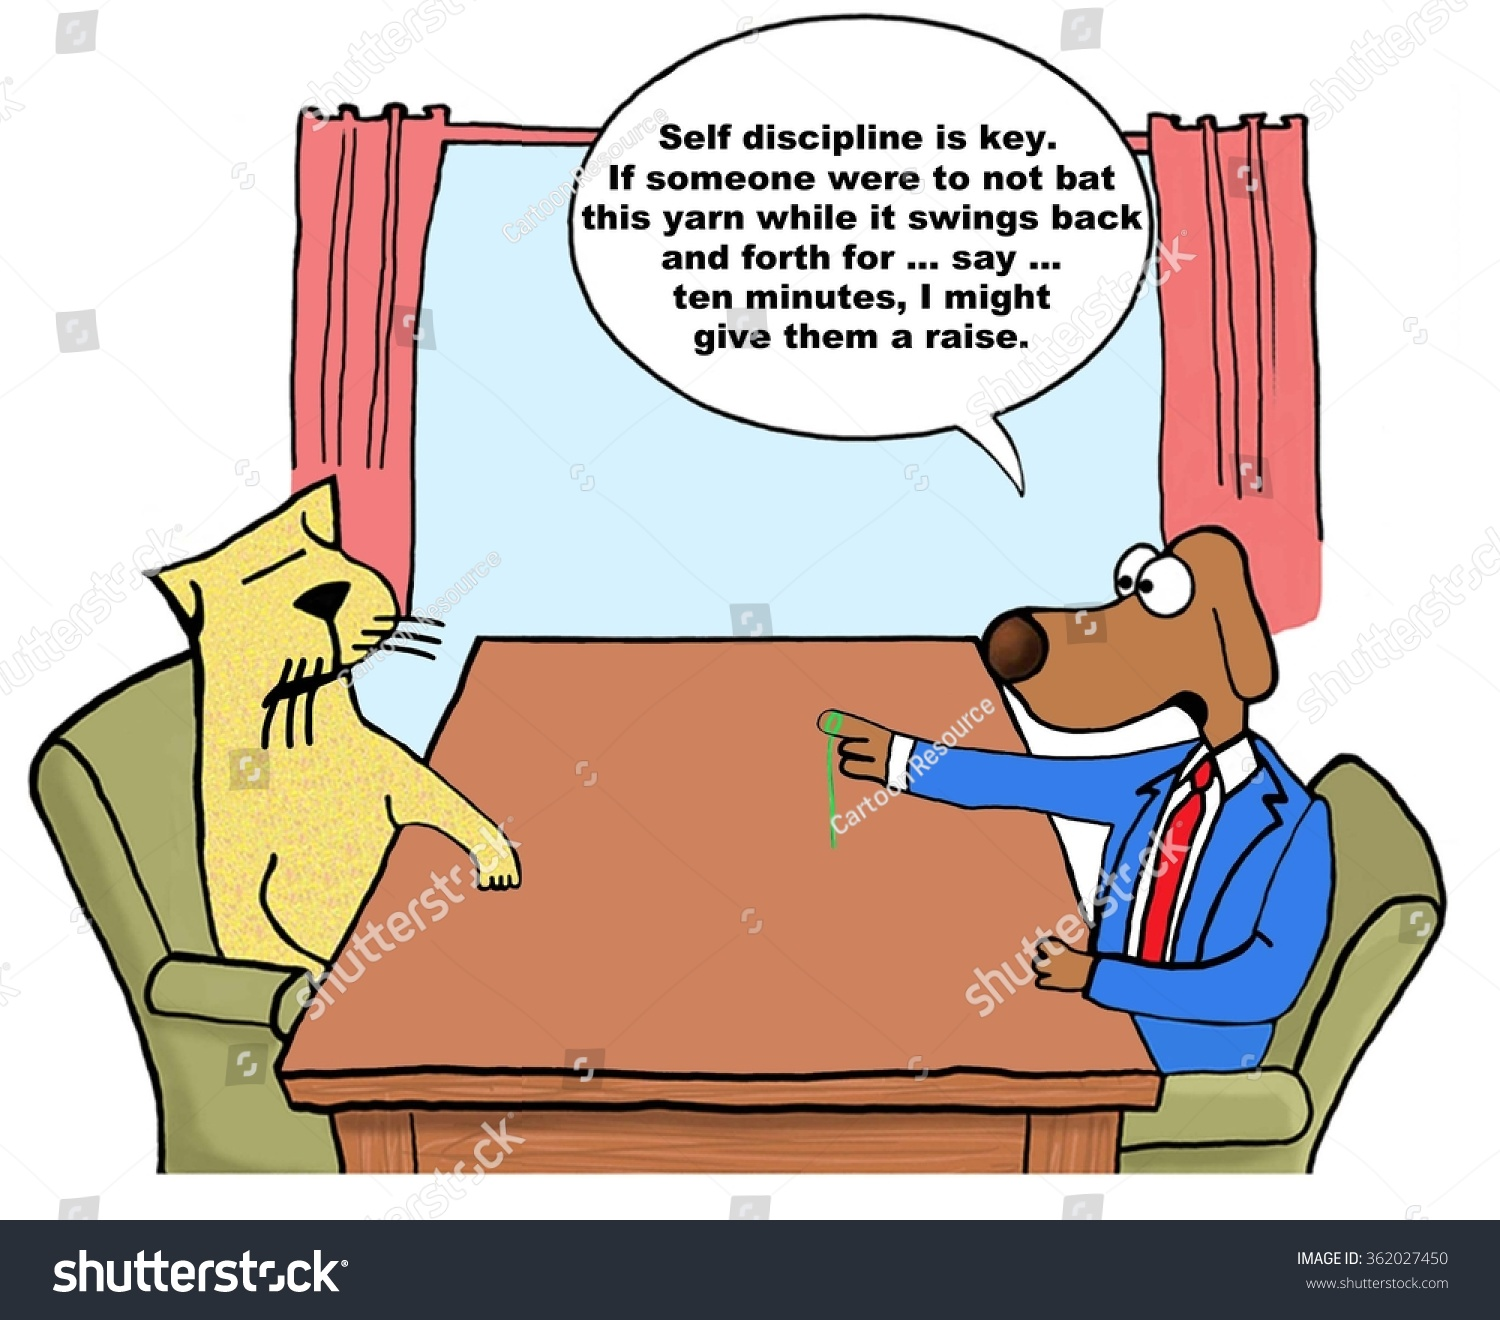 business cartoon about salary increase boss stock illustration business cartoon about salary increase the boss dog is tormenting the worker cat if